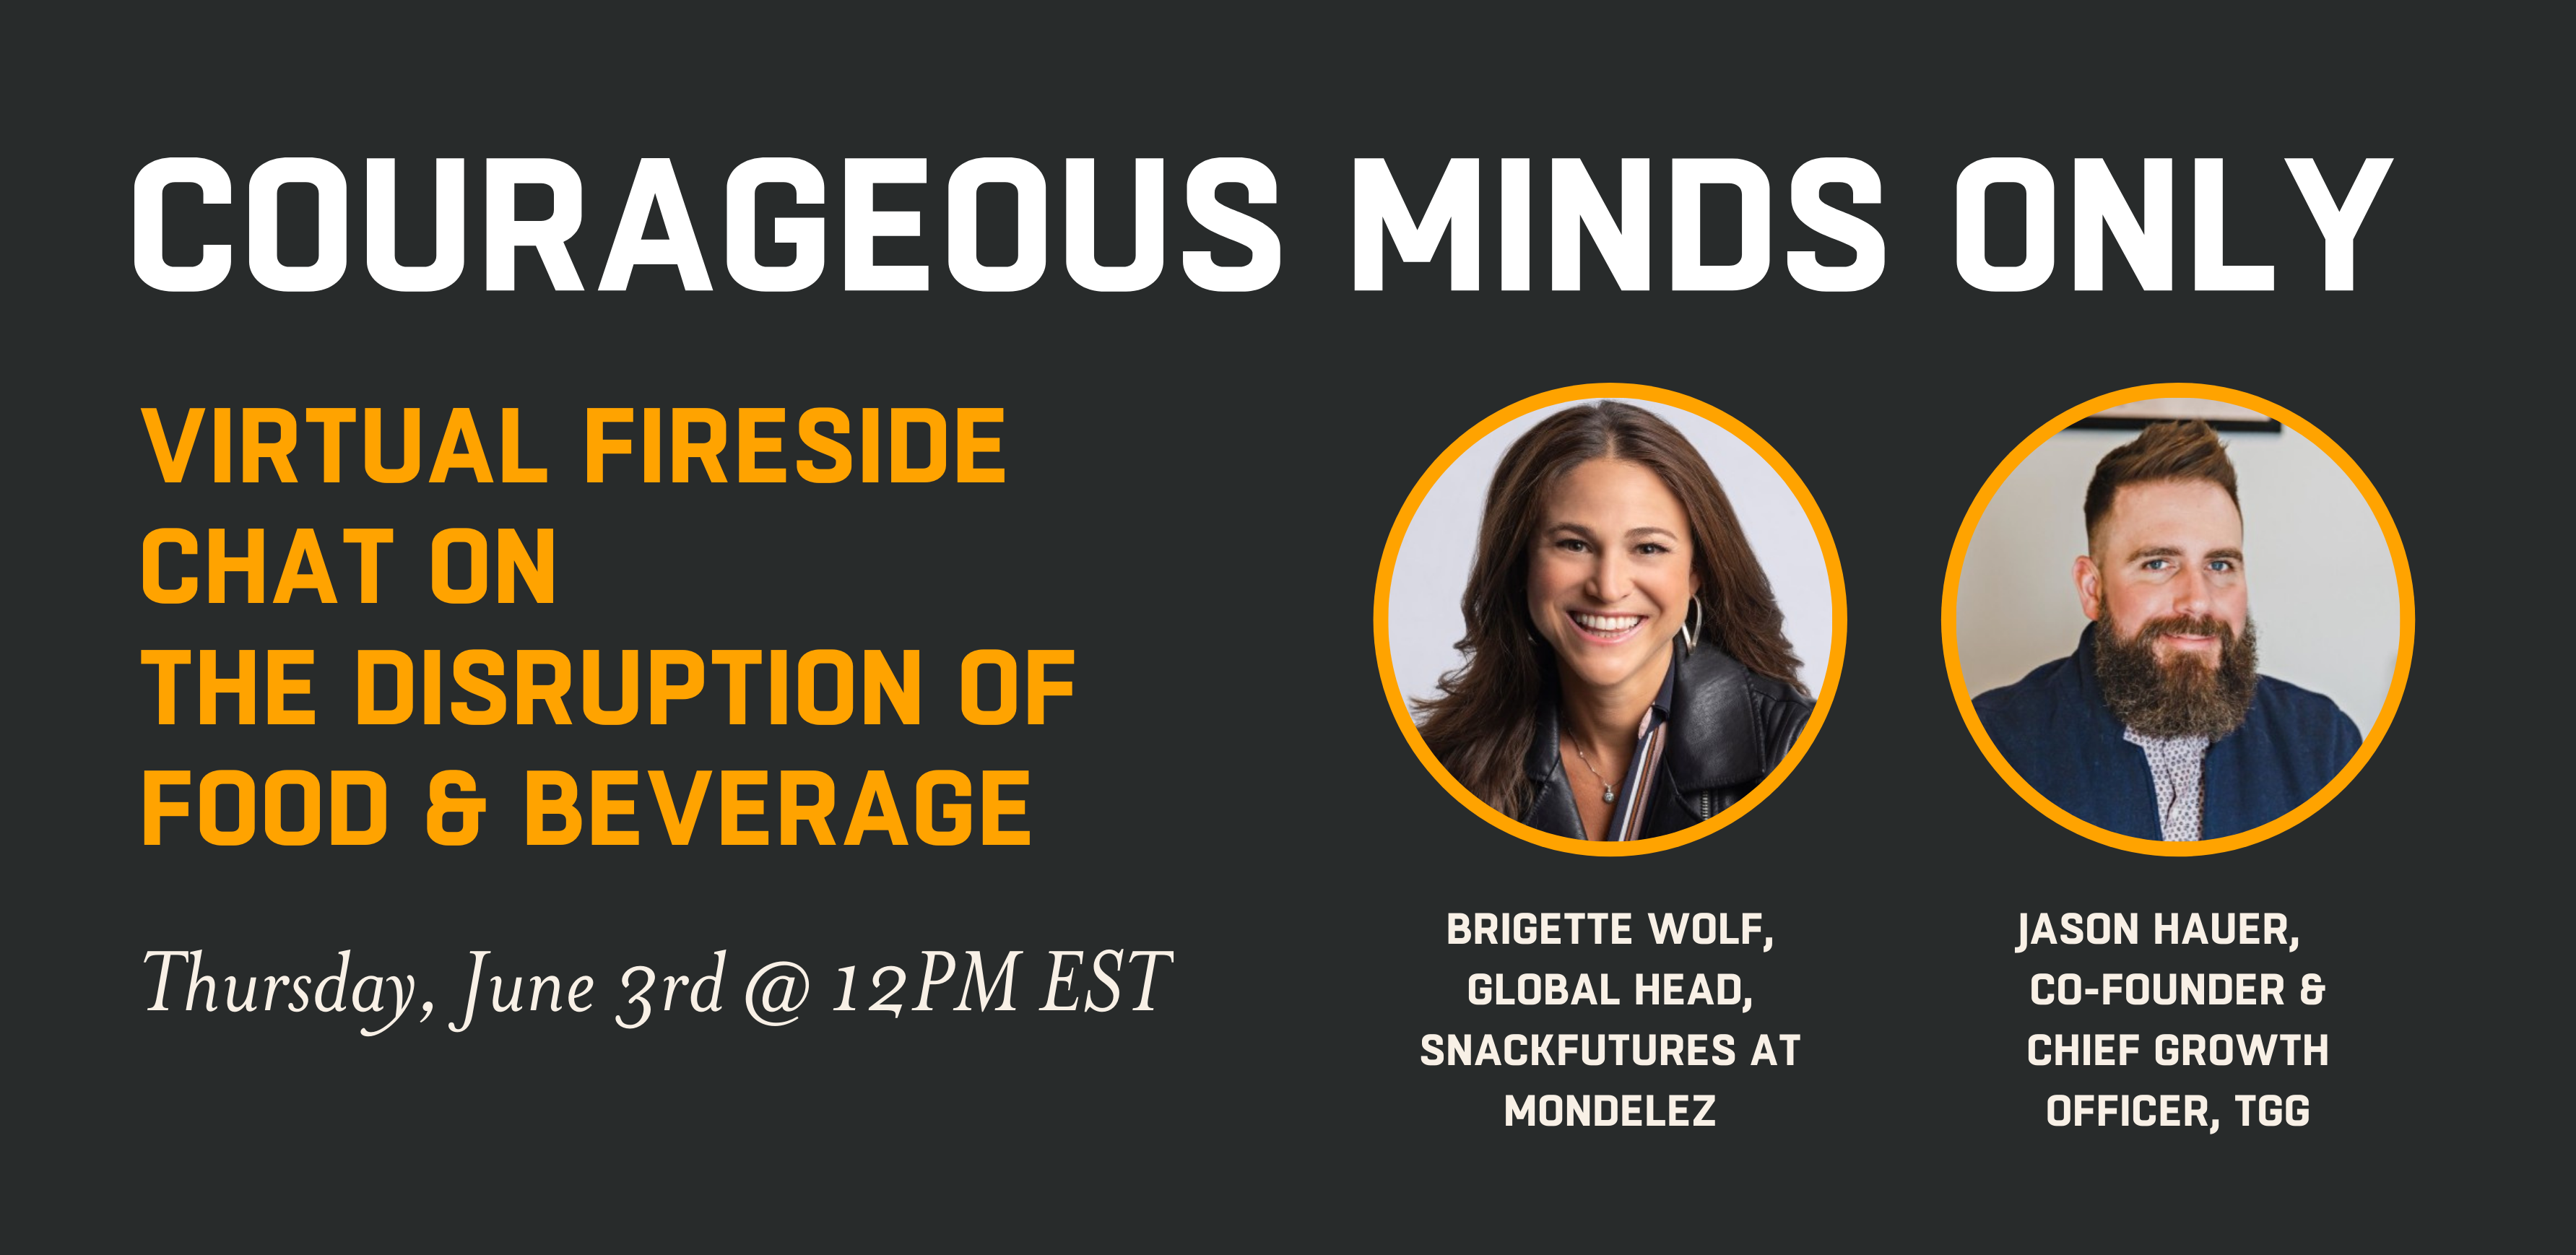 Courageous Minds Only Virtual Fireside Chat With Mondelez on The Disruption of Food And Beverage Thursday, June 3rd at 12PM EST